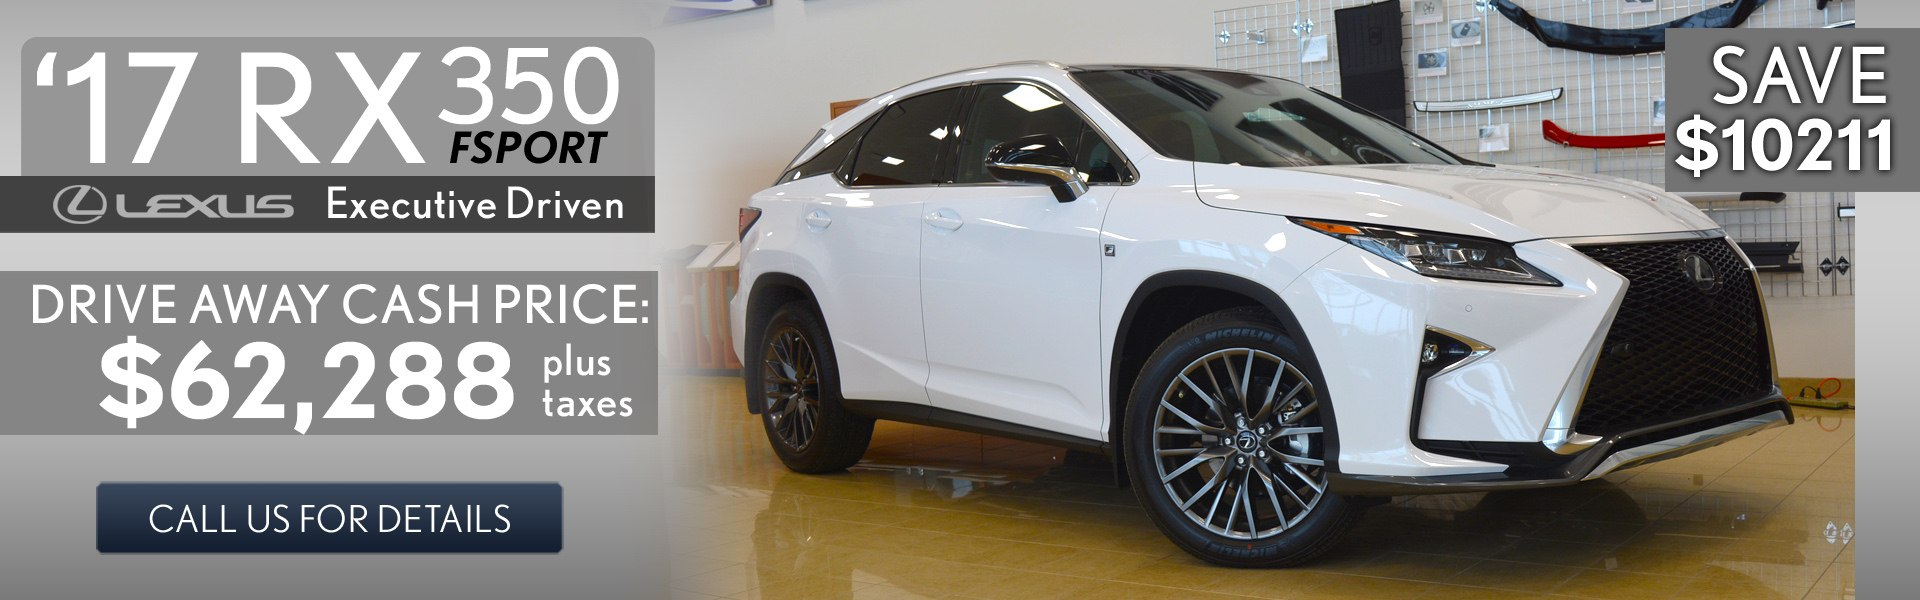 Over $10000 off – RX350 F-Sport